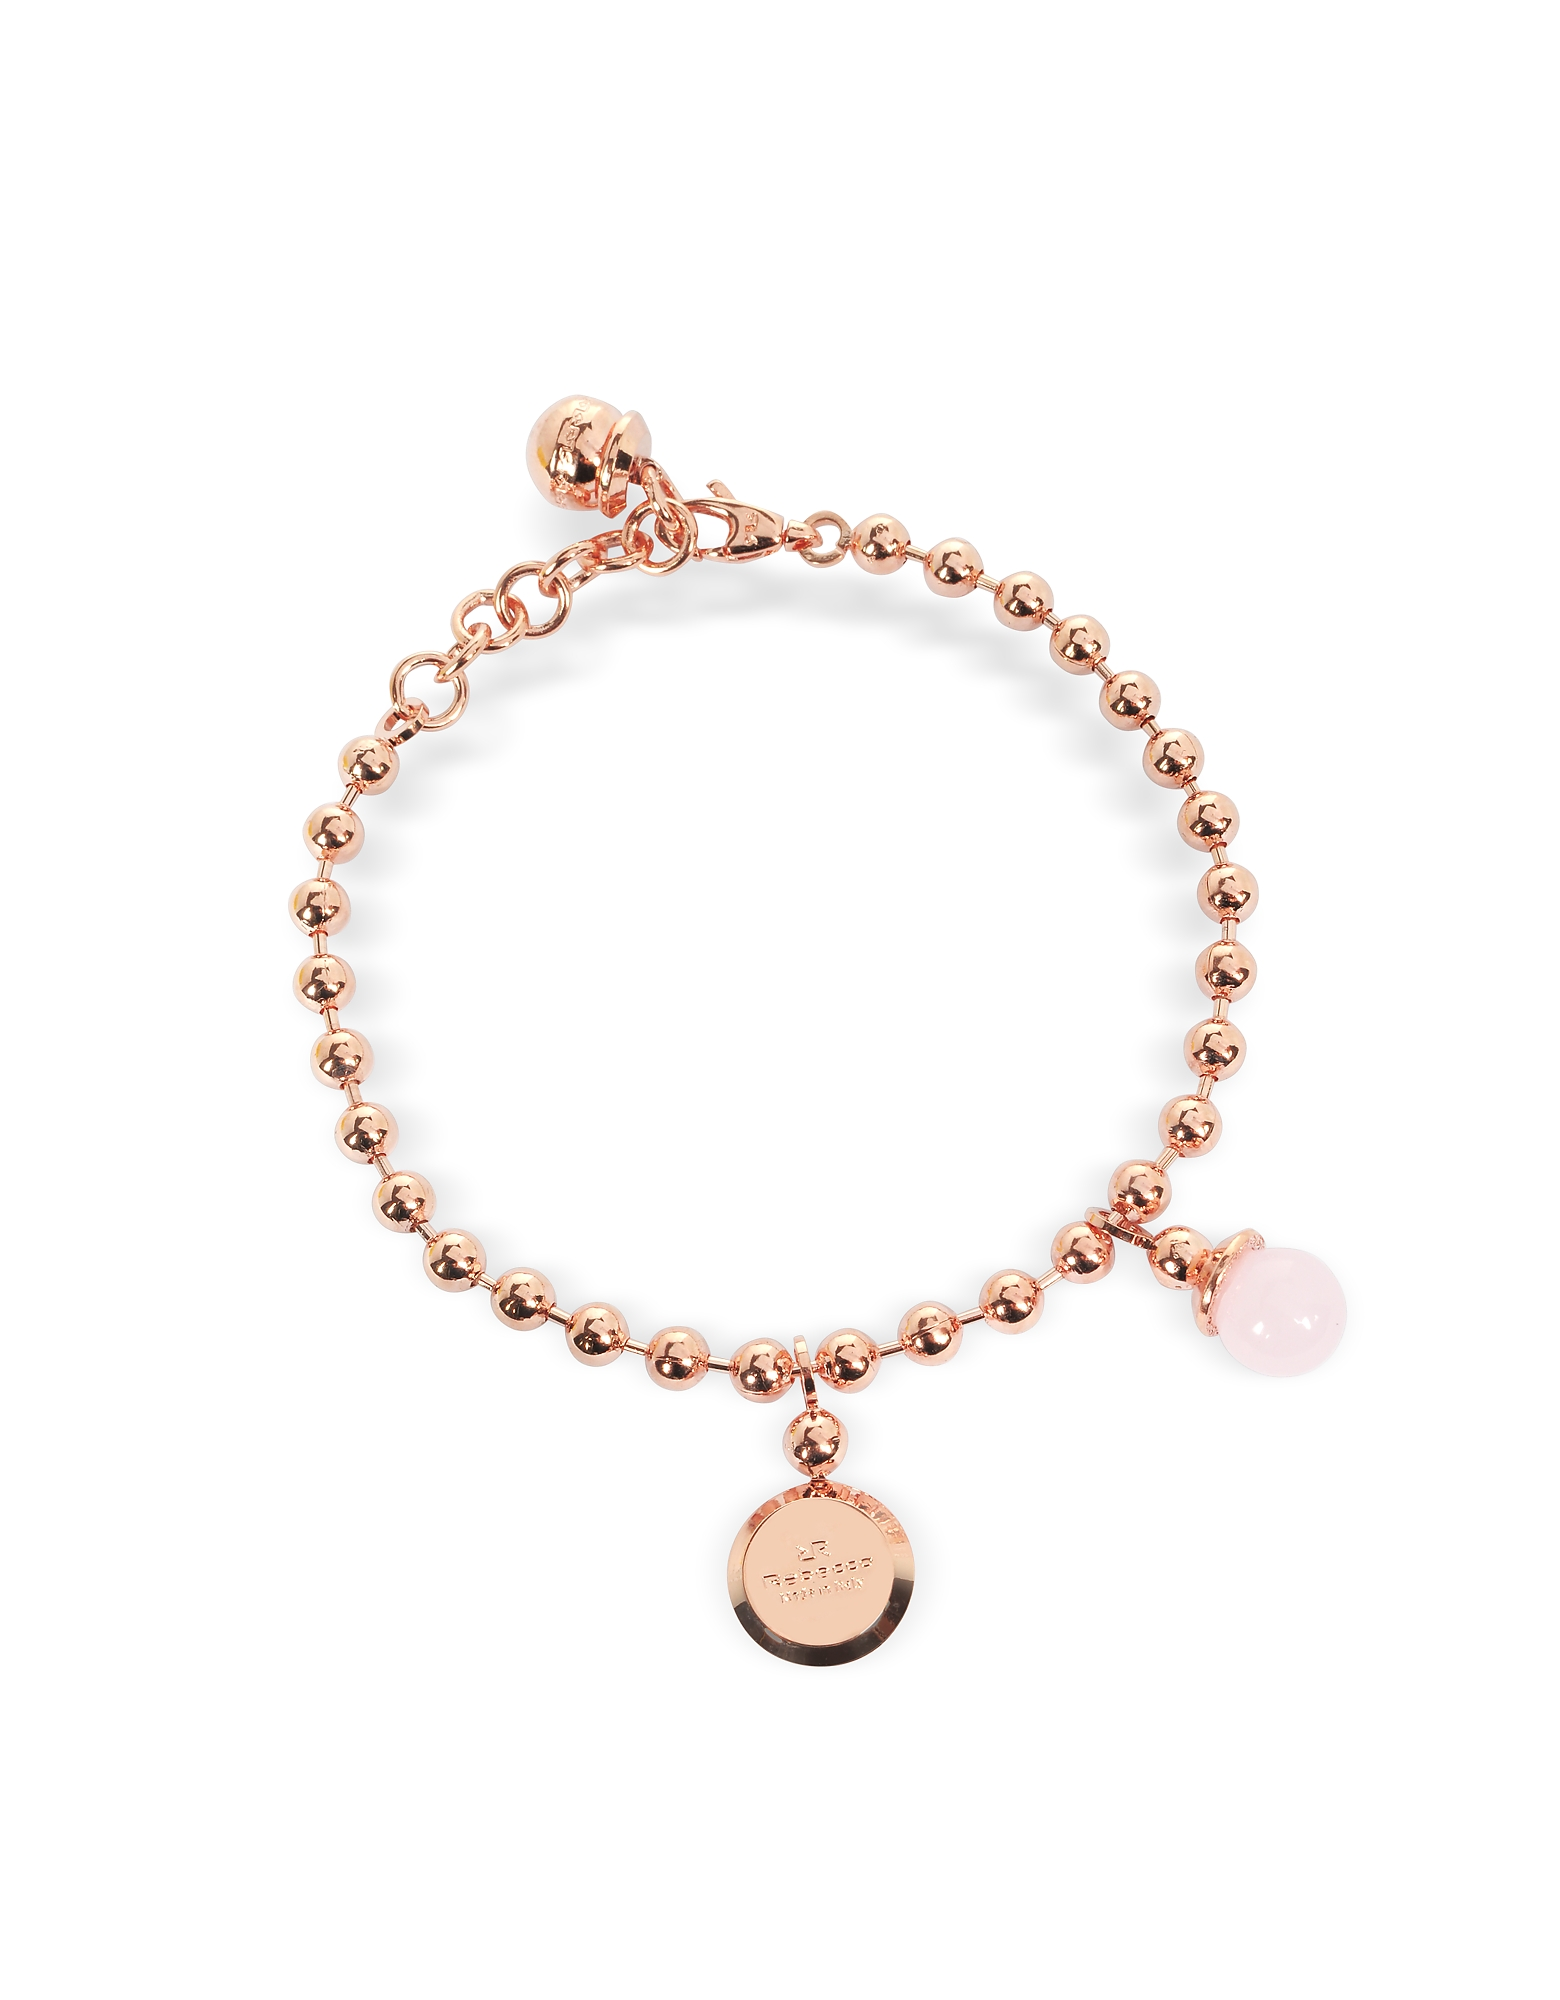 Boulevard Stone Rose Gold Over Bronze Bracelet w/Hydrothermal Pink Stone